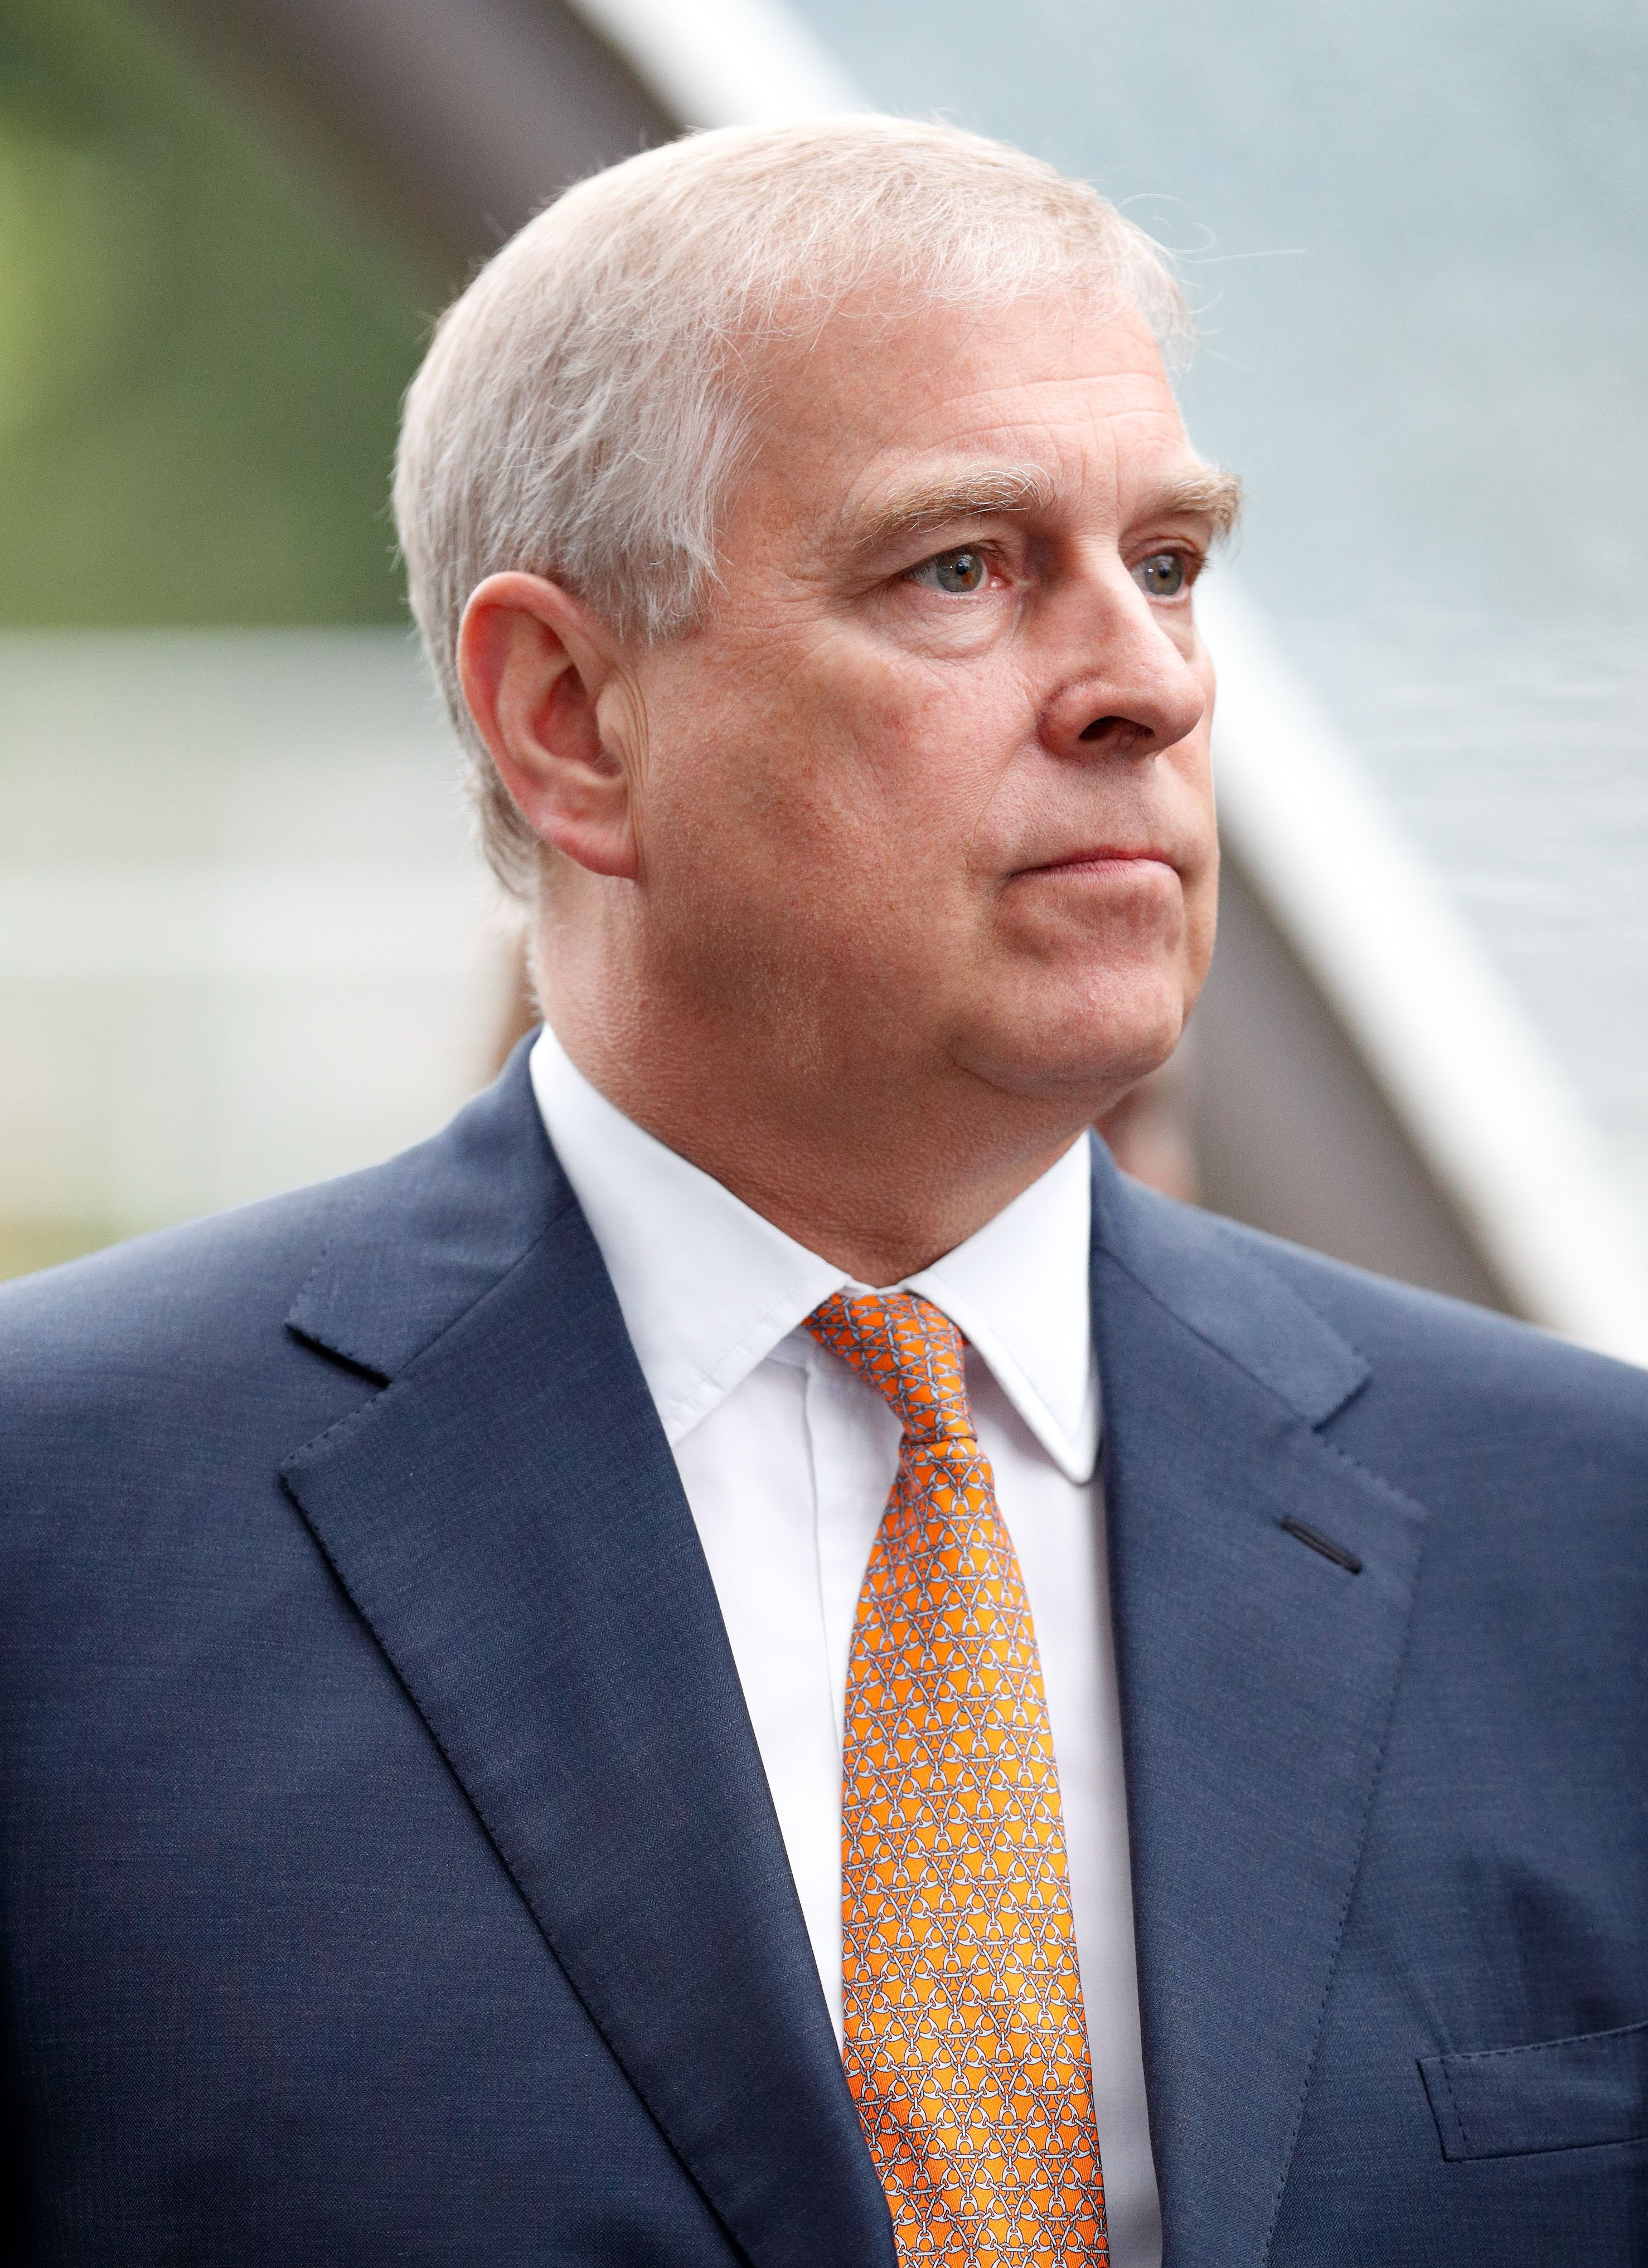 Prince Andrew during the King George VI racing meet at Ascot Racecourse on July 29, 2017 in Ascot, England. | Source: Getty Images